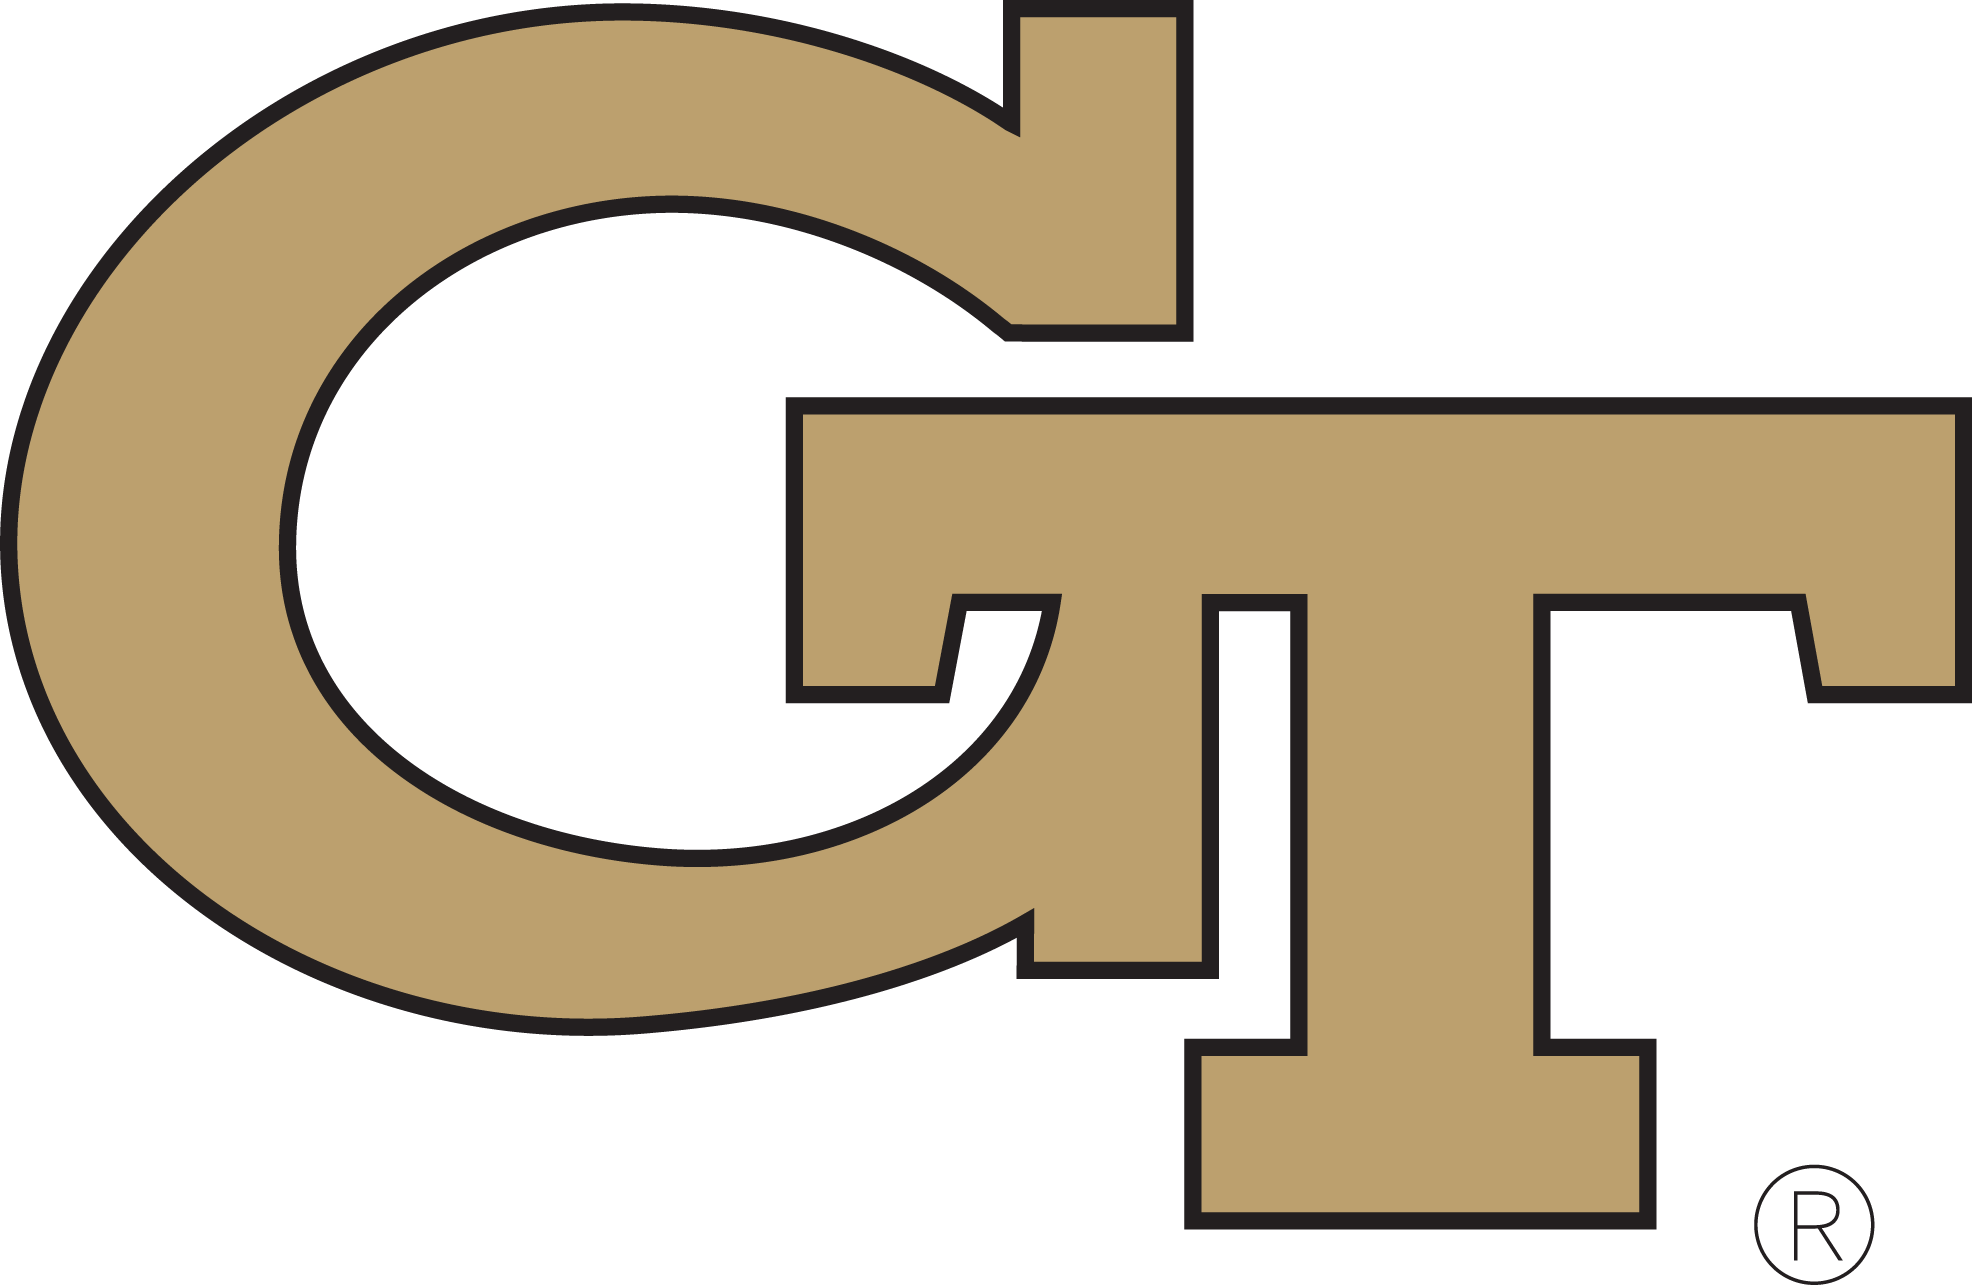 gt logo georgia tech yellow jackets football soccer logos rh pinterest co uk georgia tech logo font georgia tech logo download